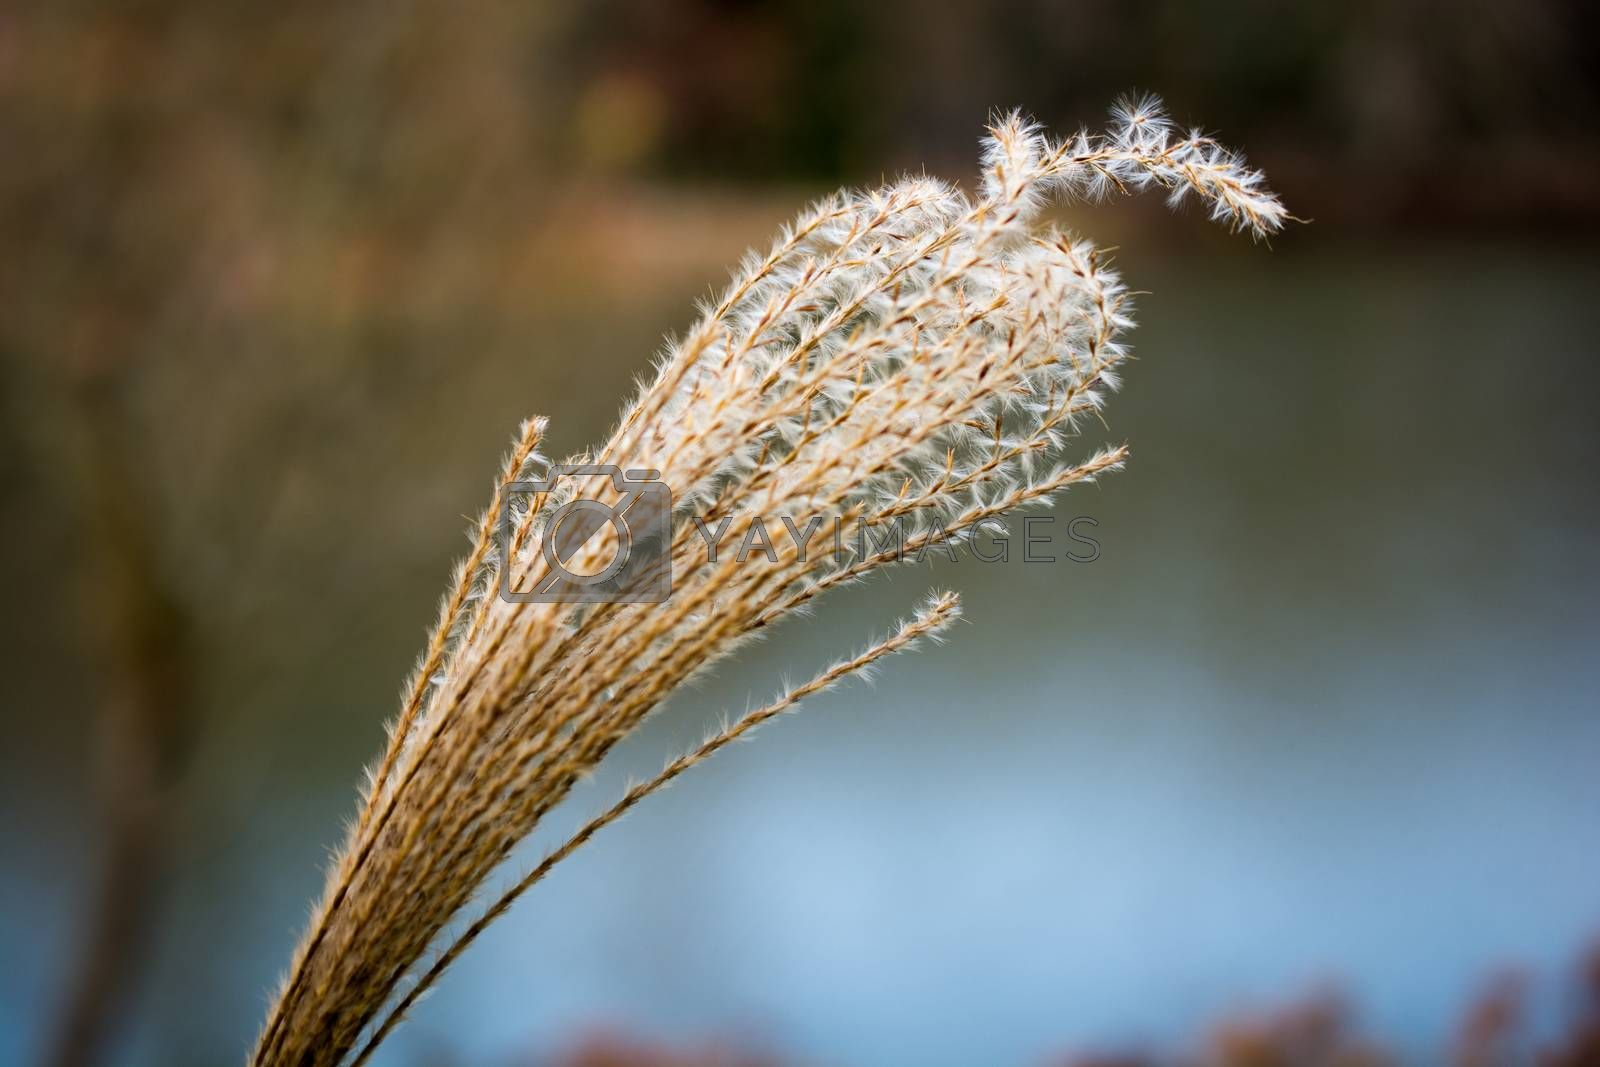 Dry plant found in nature background